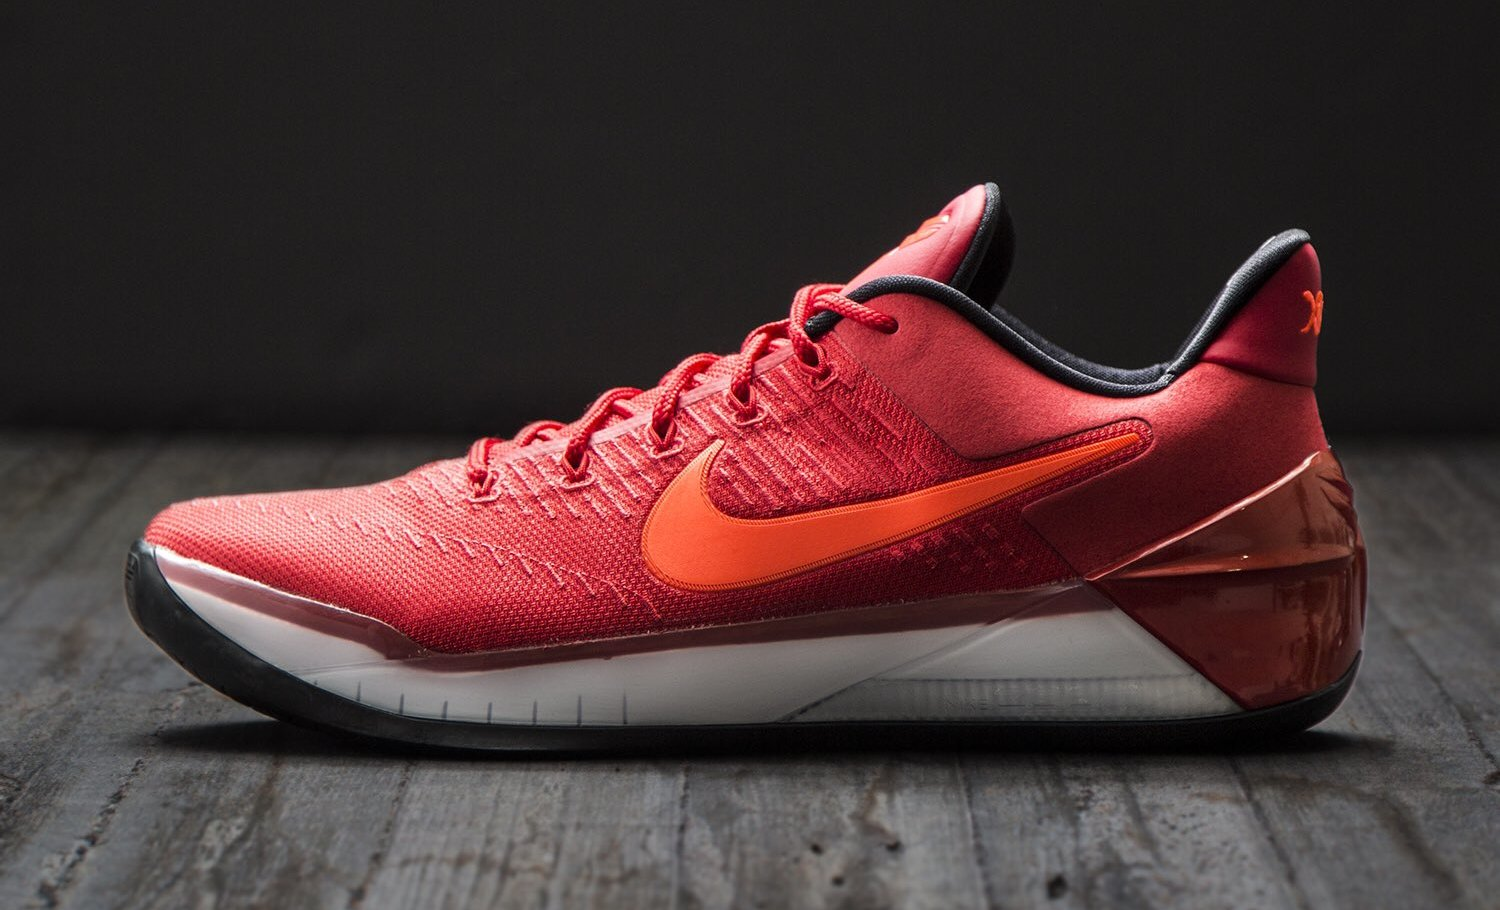 02d2face3aa6 3142c 817e2  promo code for nike kobe ad university red release date 852425  608 sole collector 7f53f 6e597